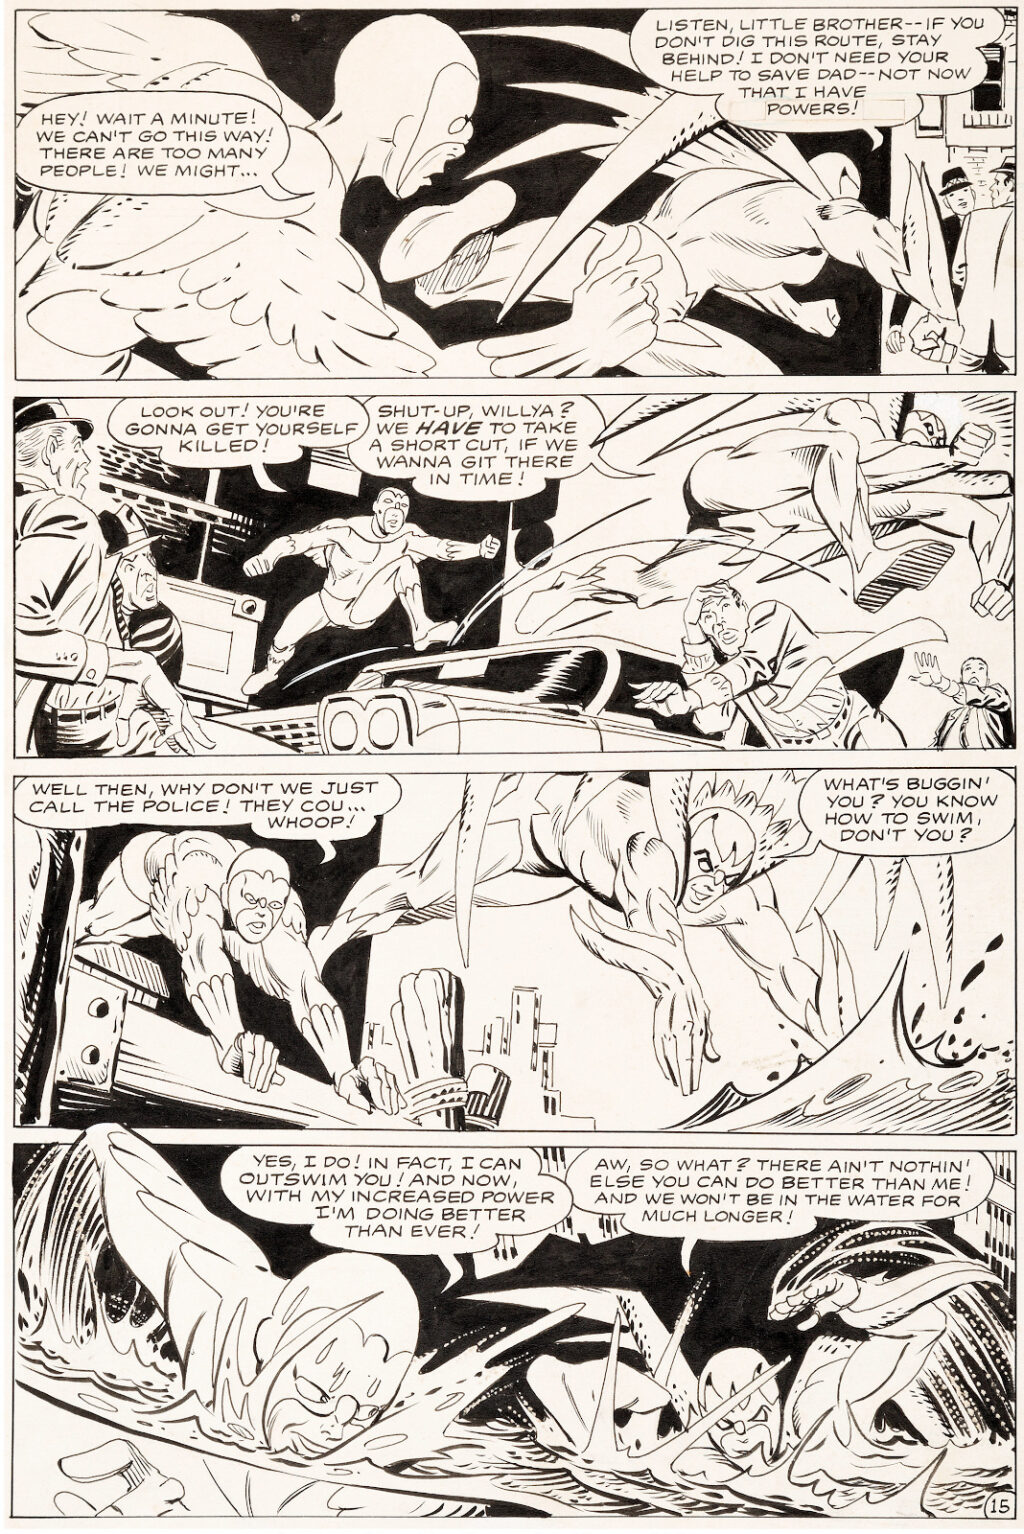 Showcase issue 75 page 15 by Steve Ditko